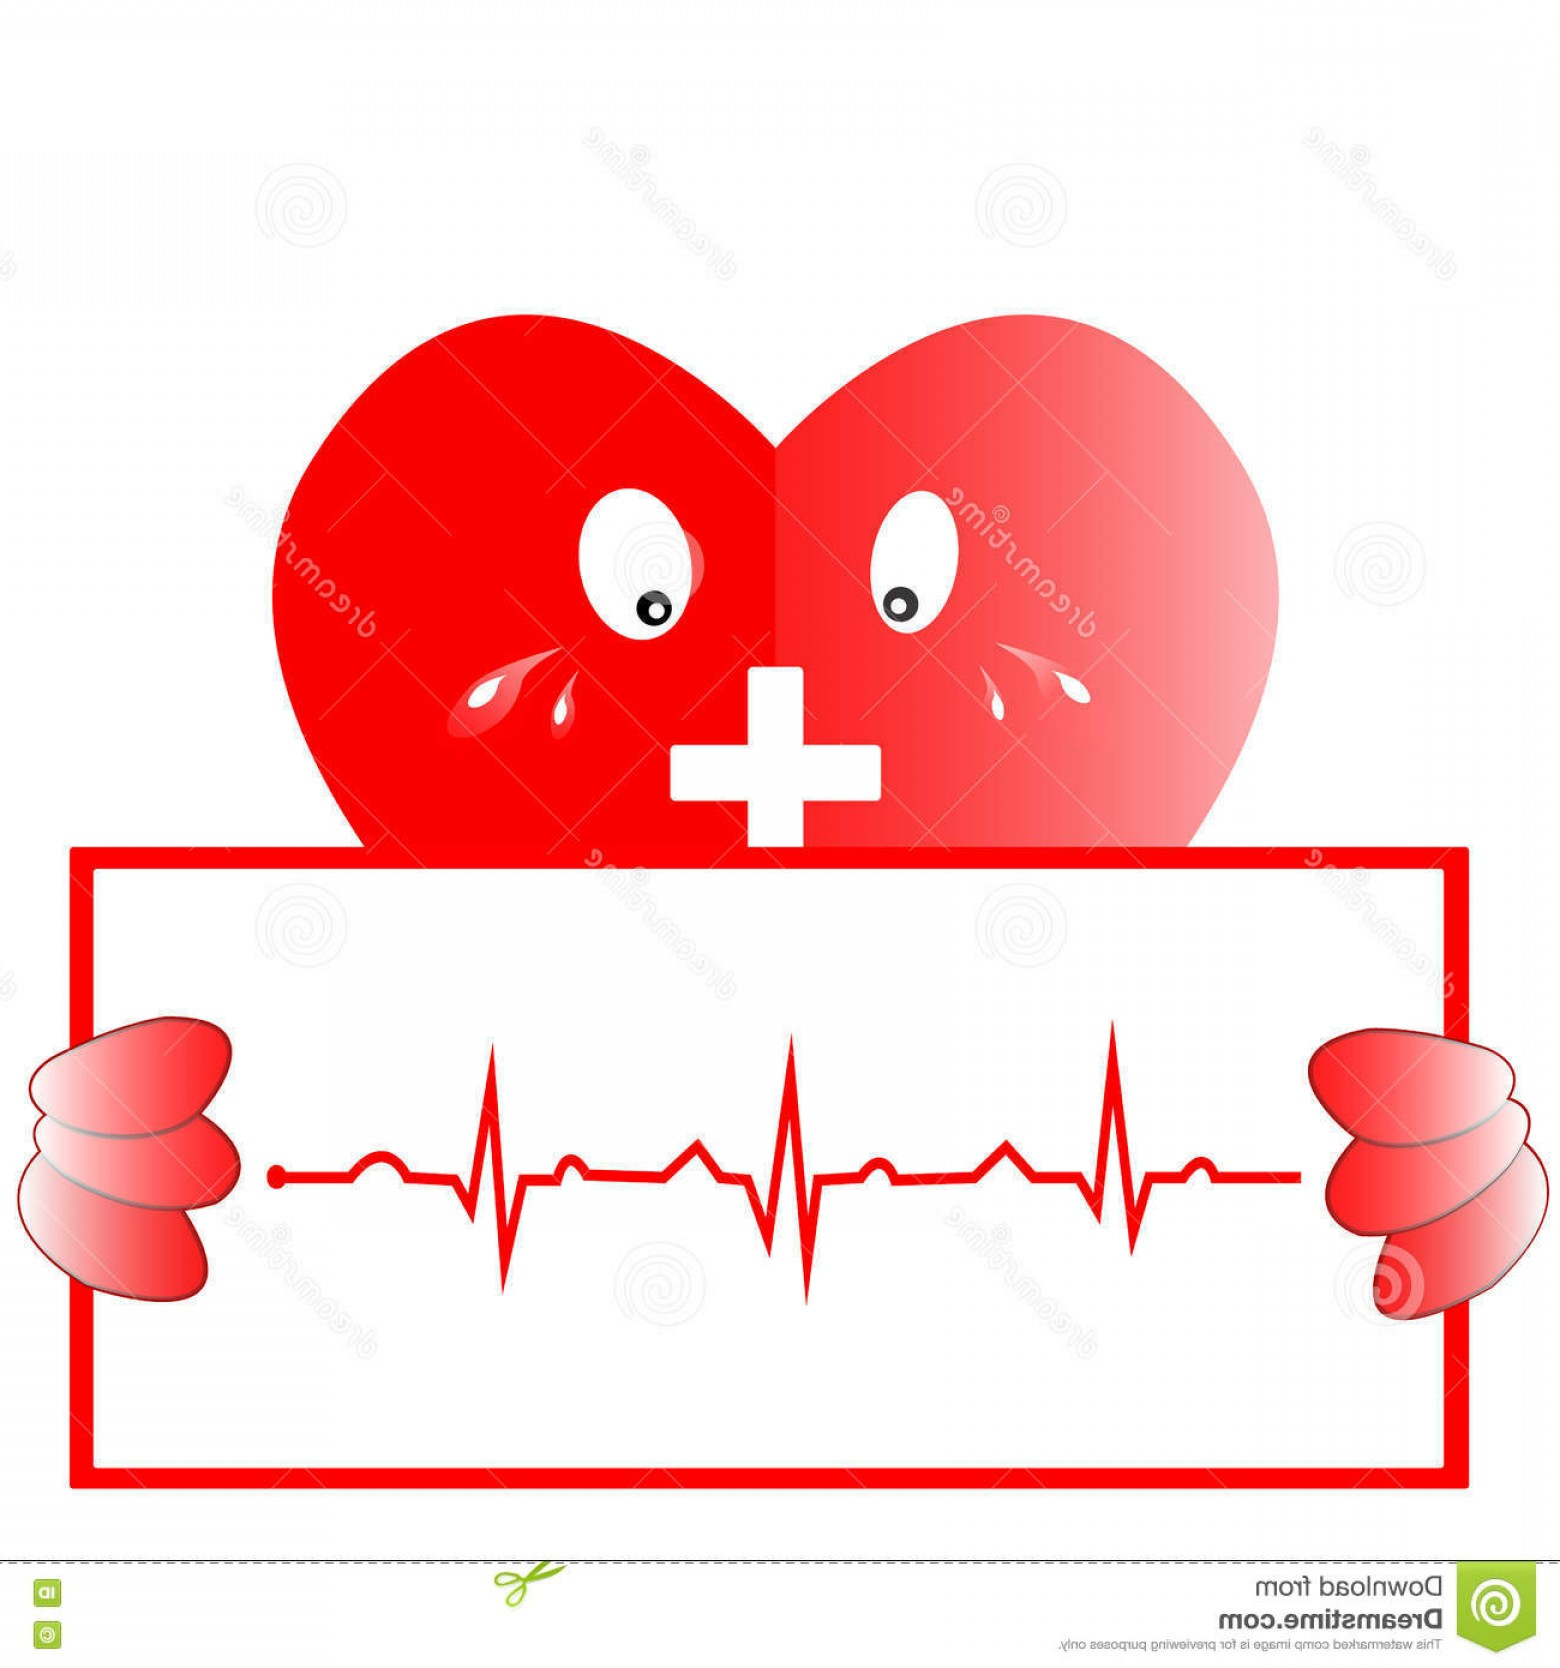 Heart With EKG Line Vector: Stock Illustration Heart Rhythm Ekg Heart Icon Ekg Line Vector Design Image